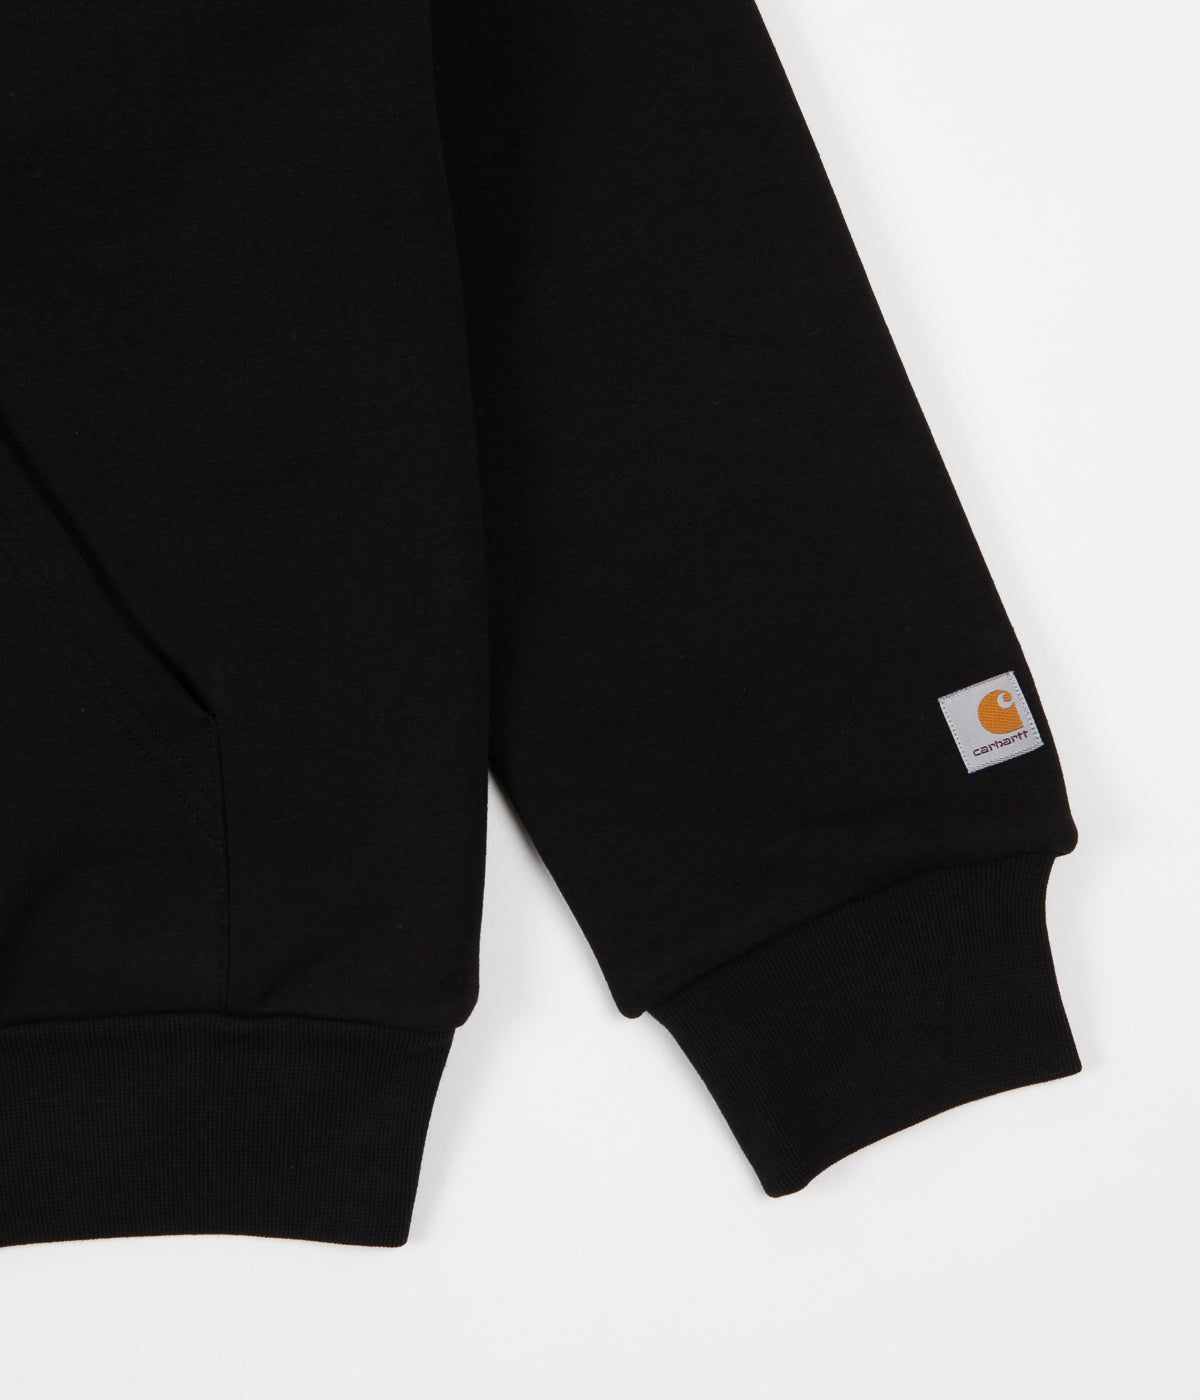 Carhartt Thermal Lined Jacket - Black